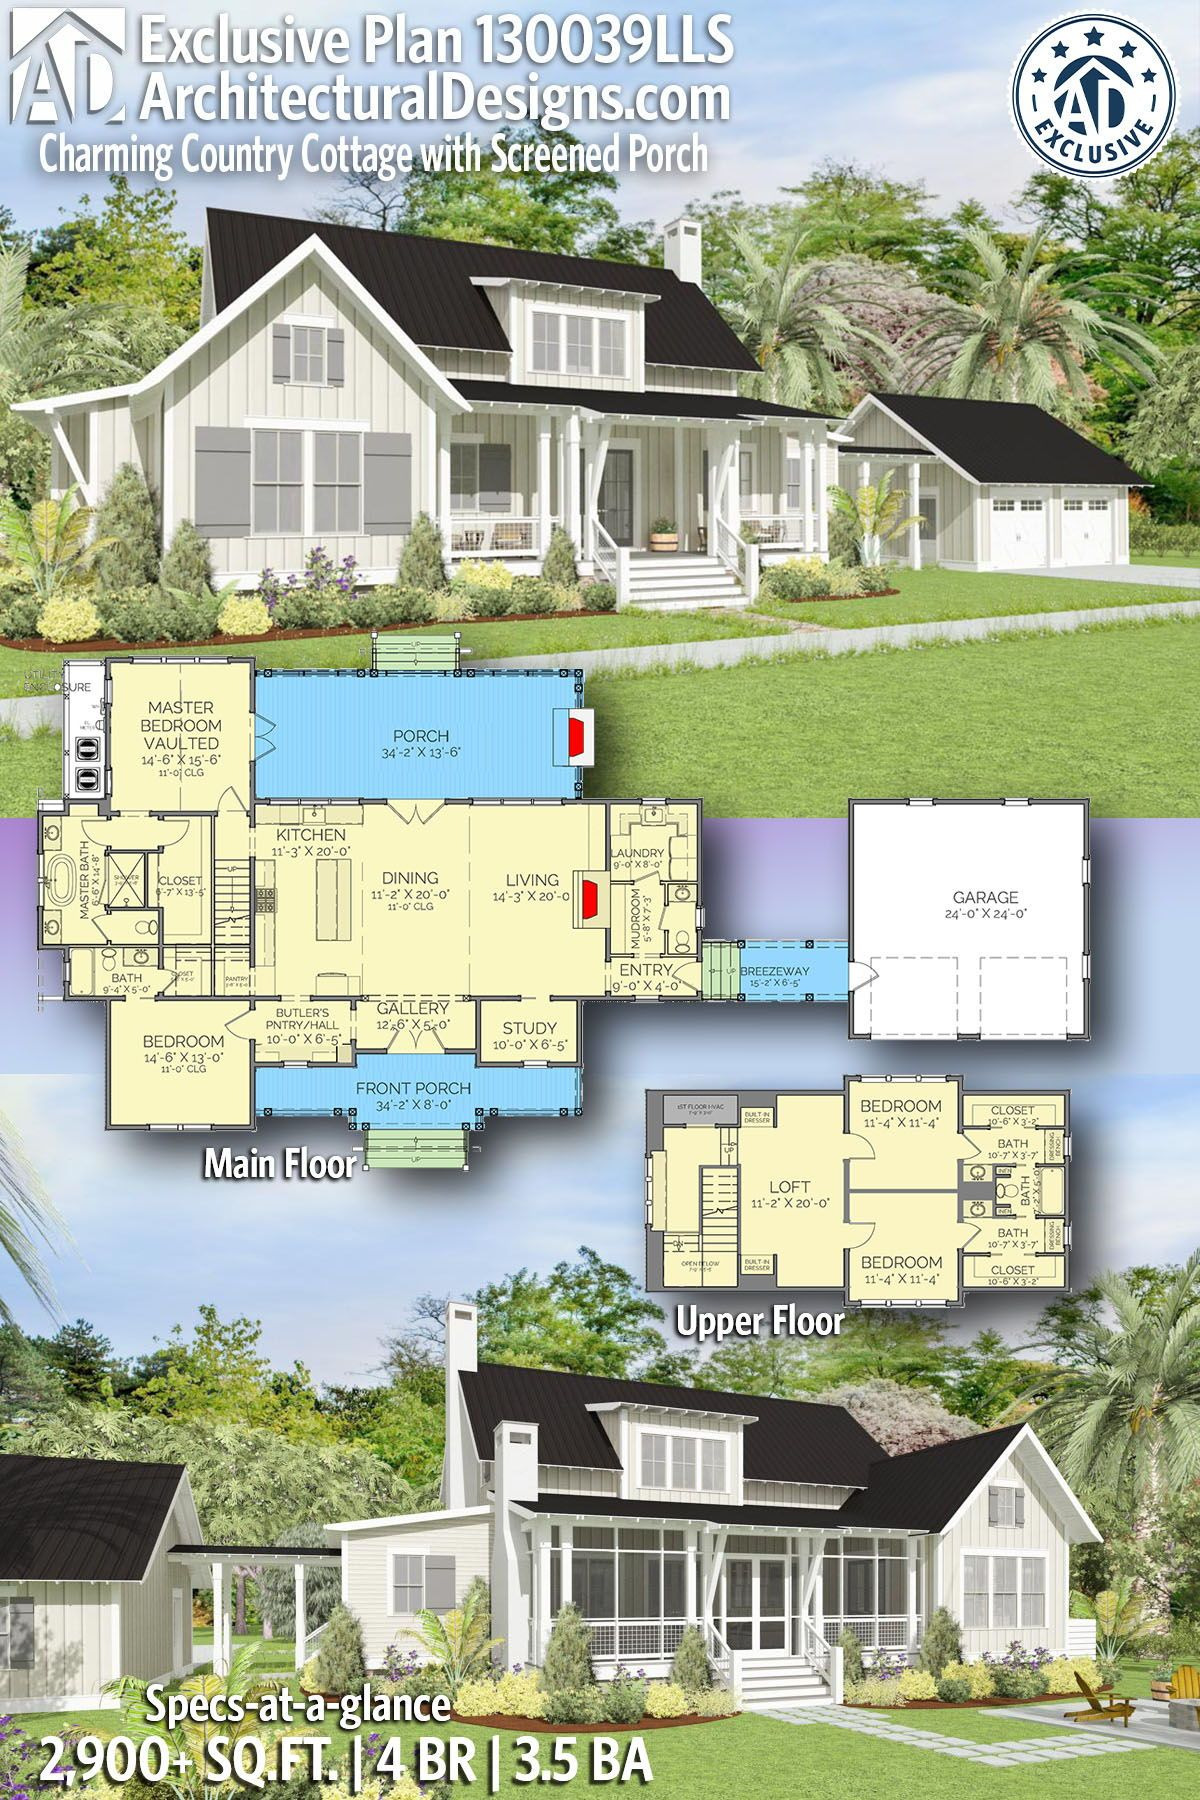 House Plans Screened Porch Lovely Plan Lls Charming Country Cottage with Screened Porch